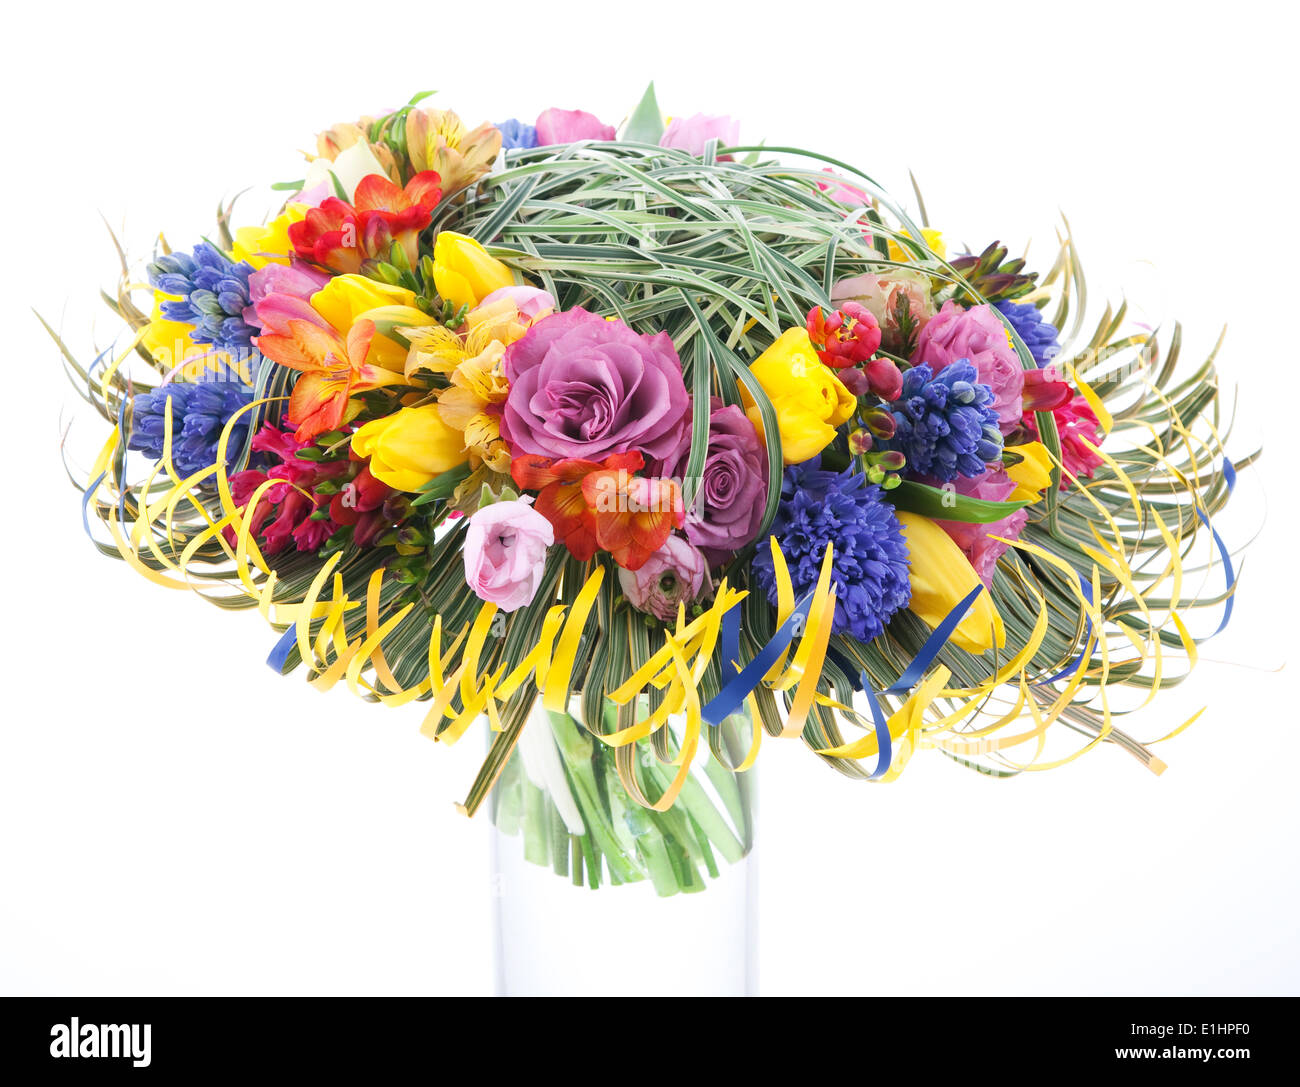 Floristics - colorful bridal bouquet of flowers isolated over white background. Wedding style Stock Photo